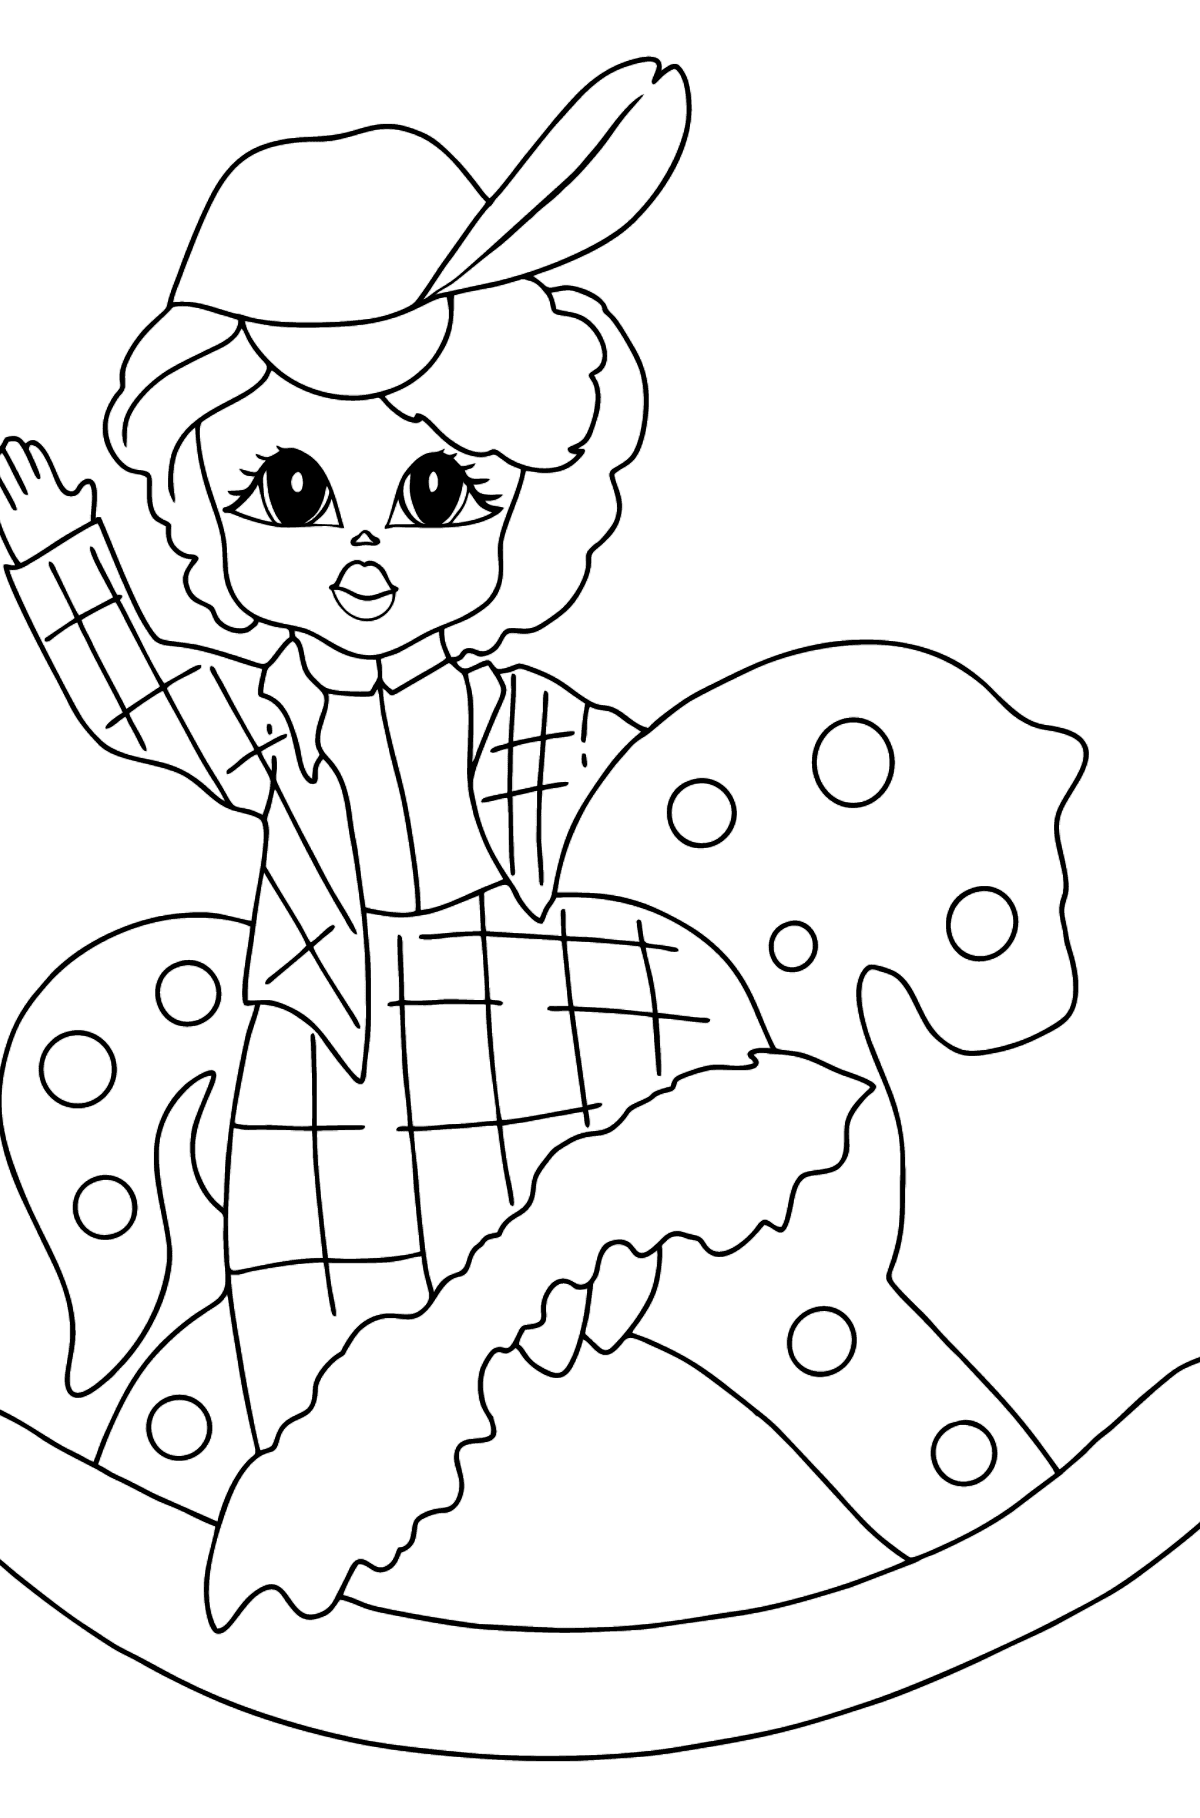 Coloring Page - A Princess on a Horse - For Girls - Coloring Pages for Kids